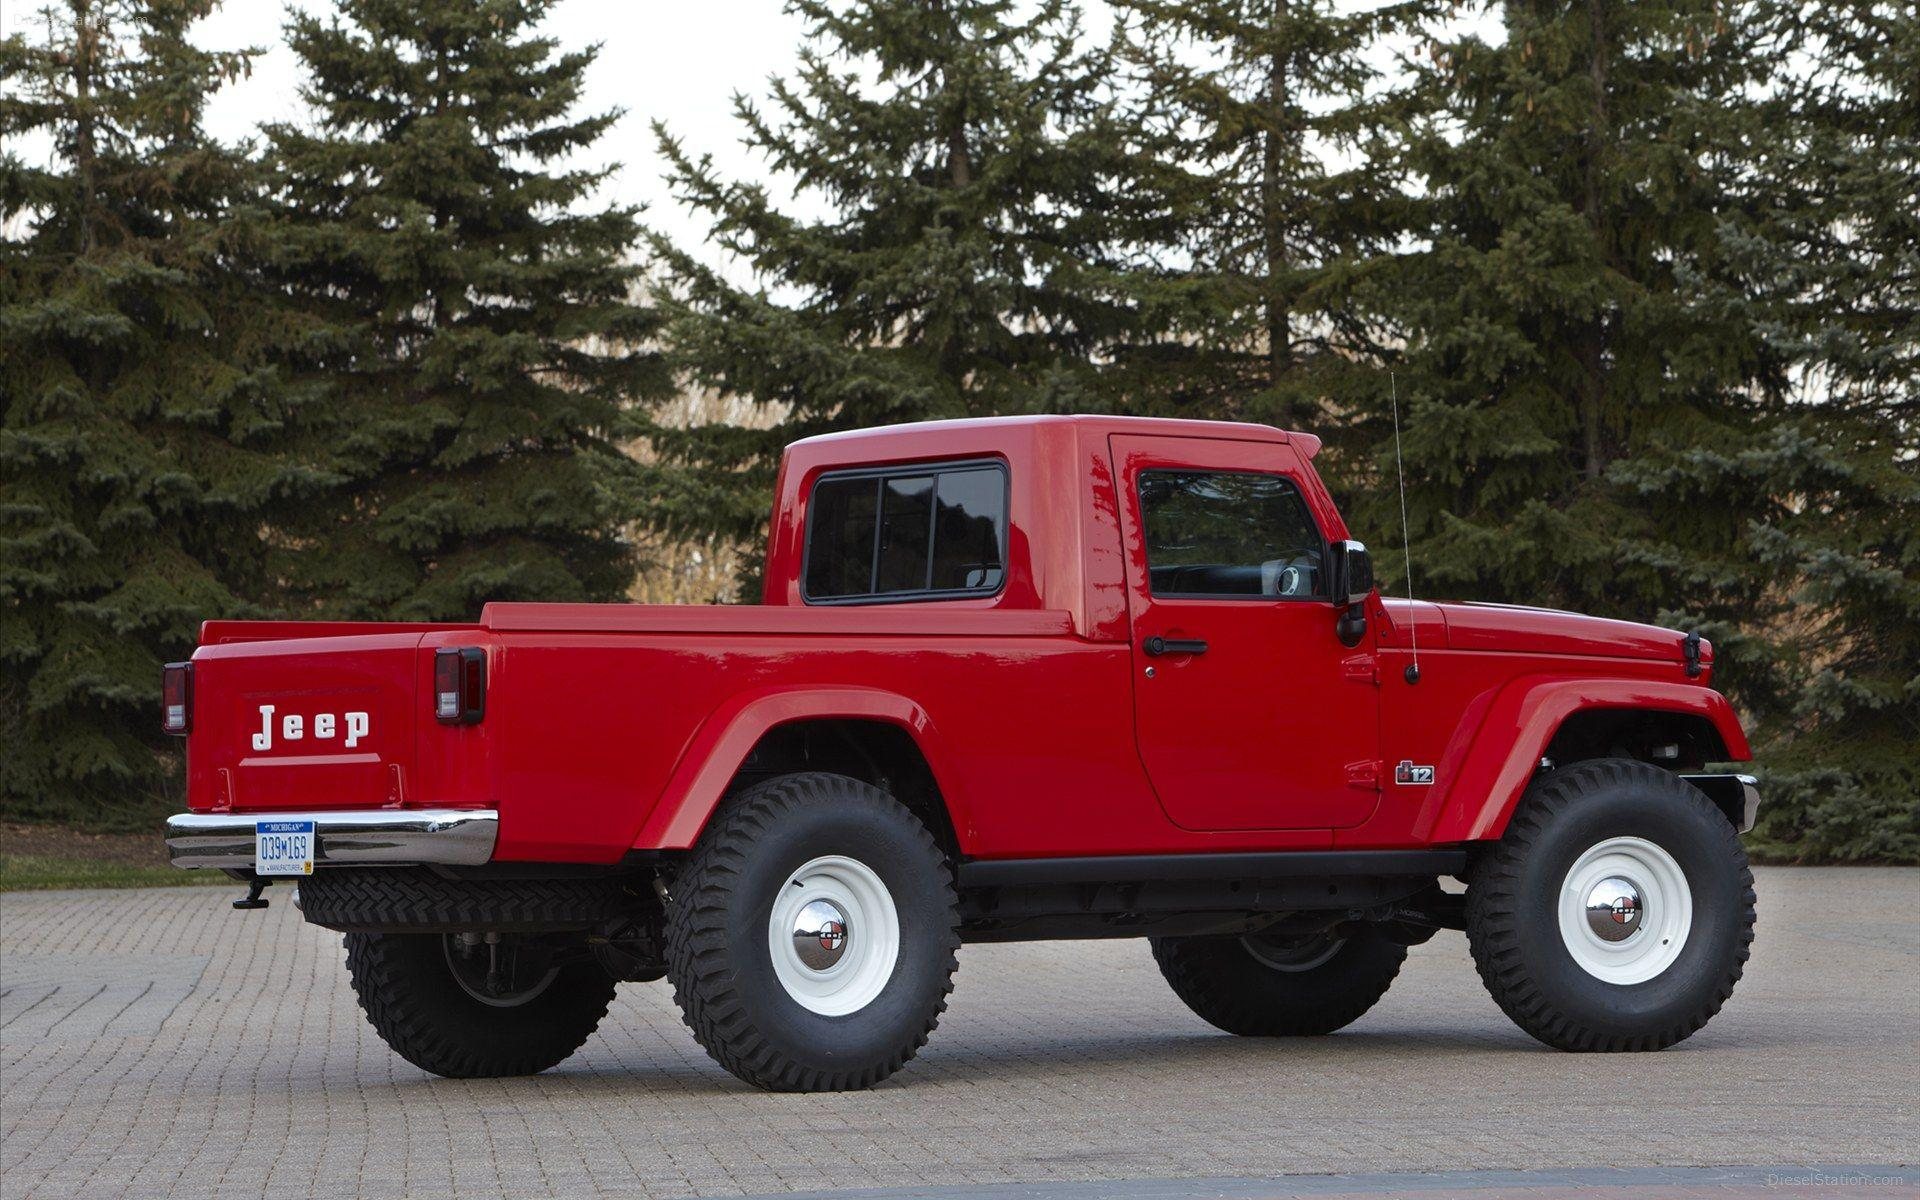 Jeep J 12 Concept 2012 Widescreen Exotic Car Wallpapers #02 of 8 ...